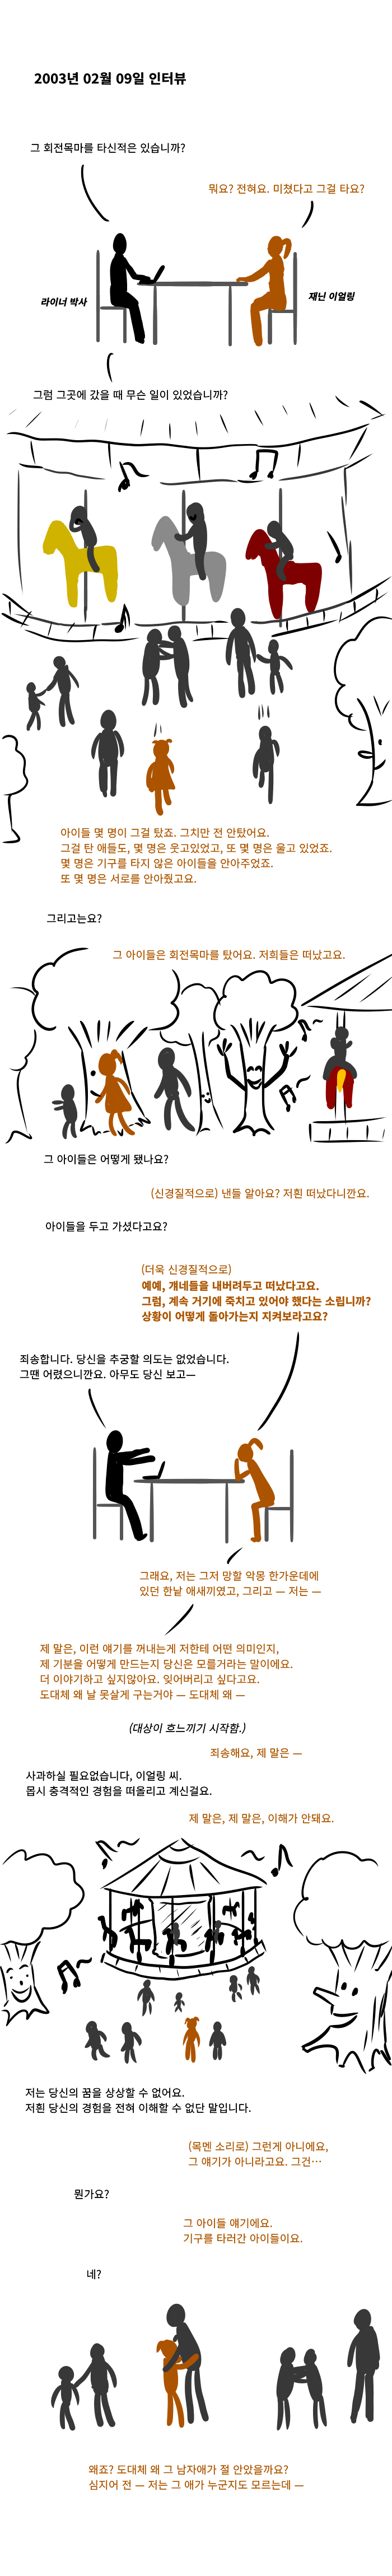 1565995100 (1).png SCP 만화 펌) SCP-2571 \